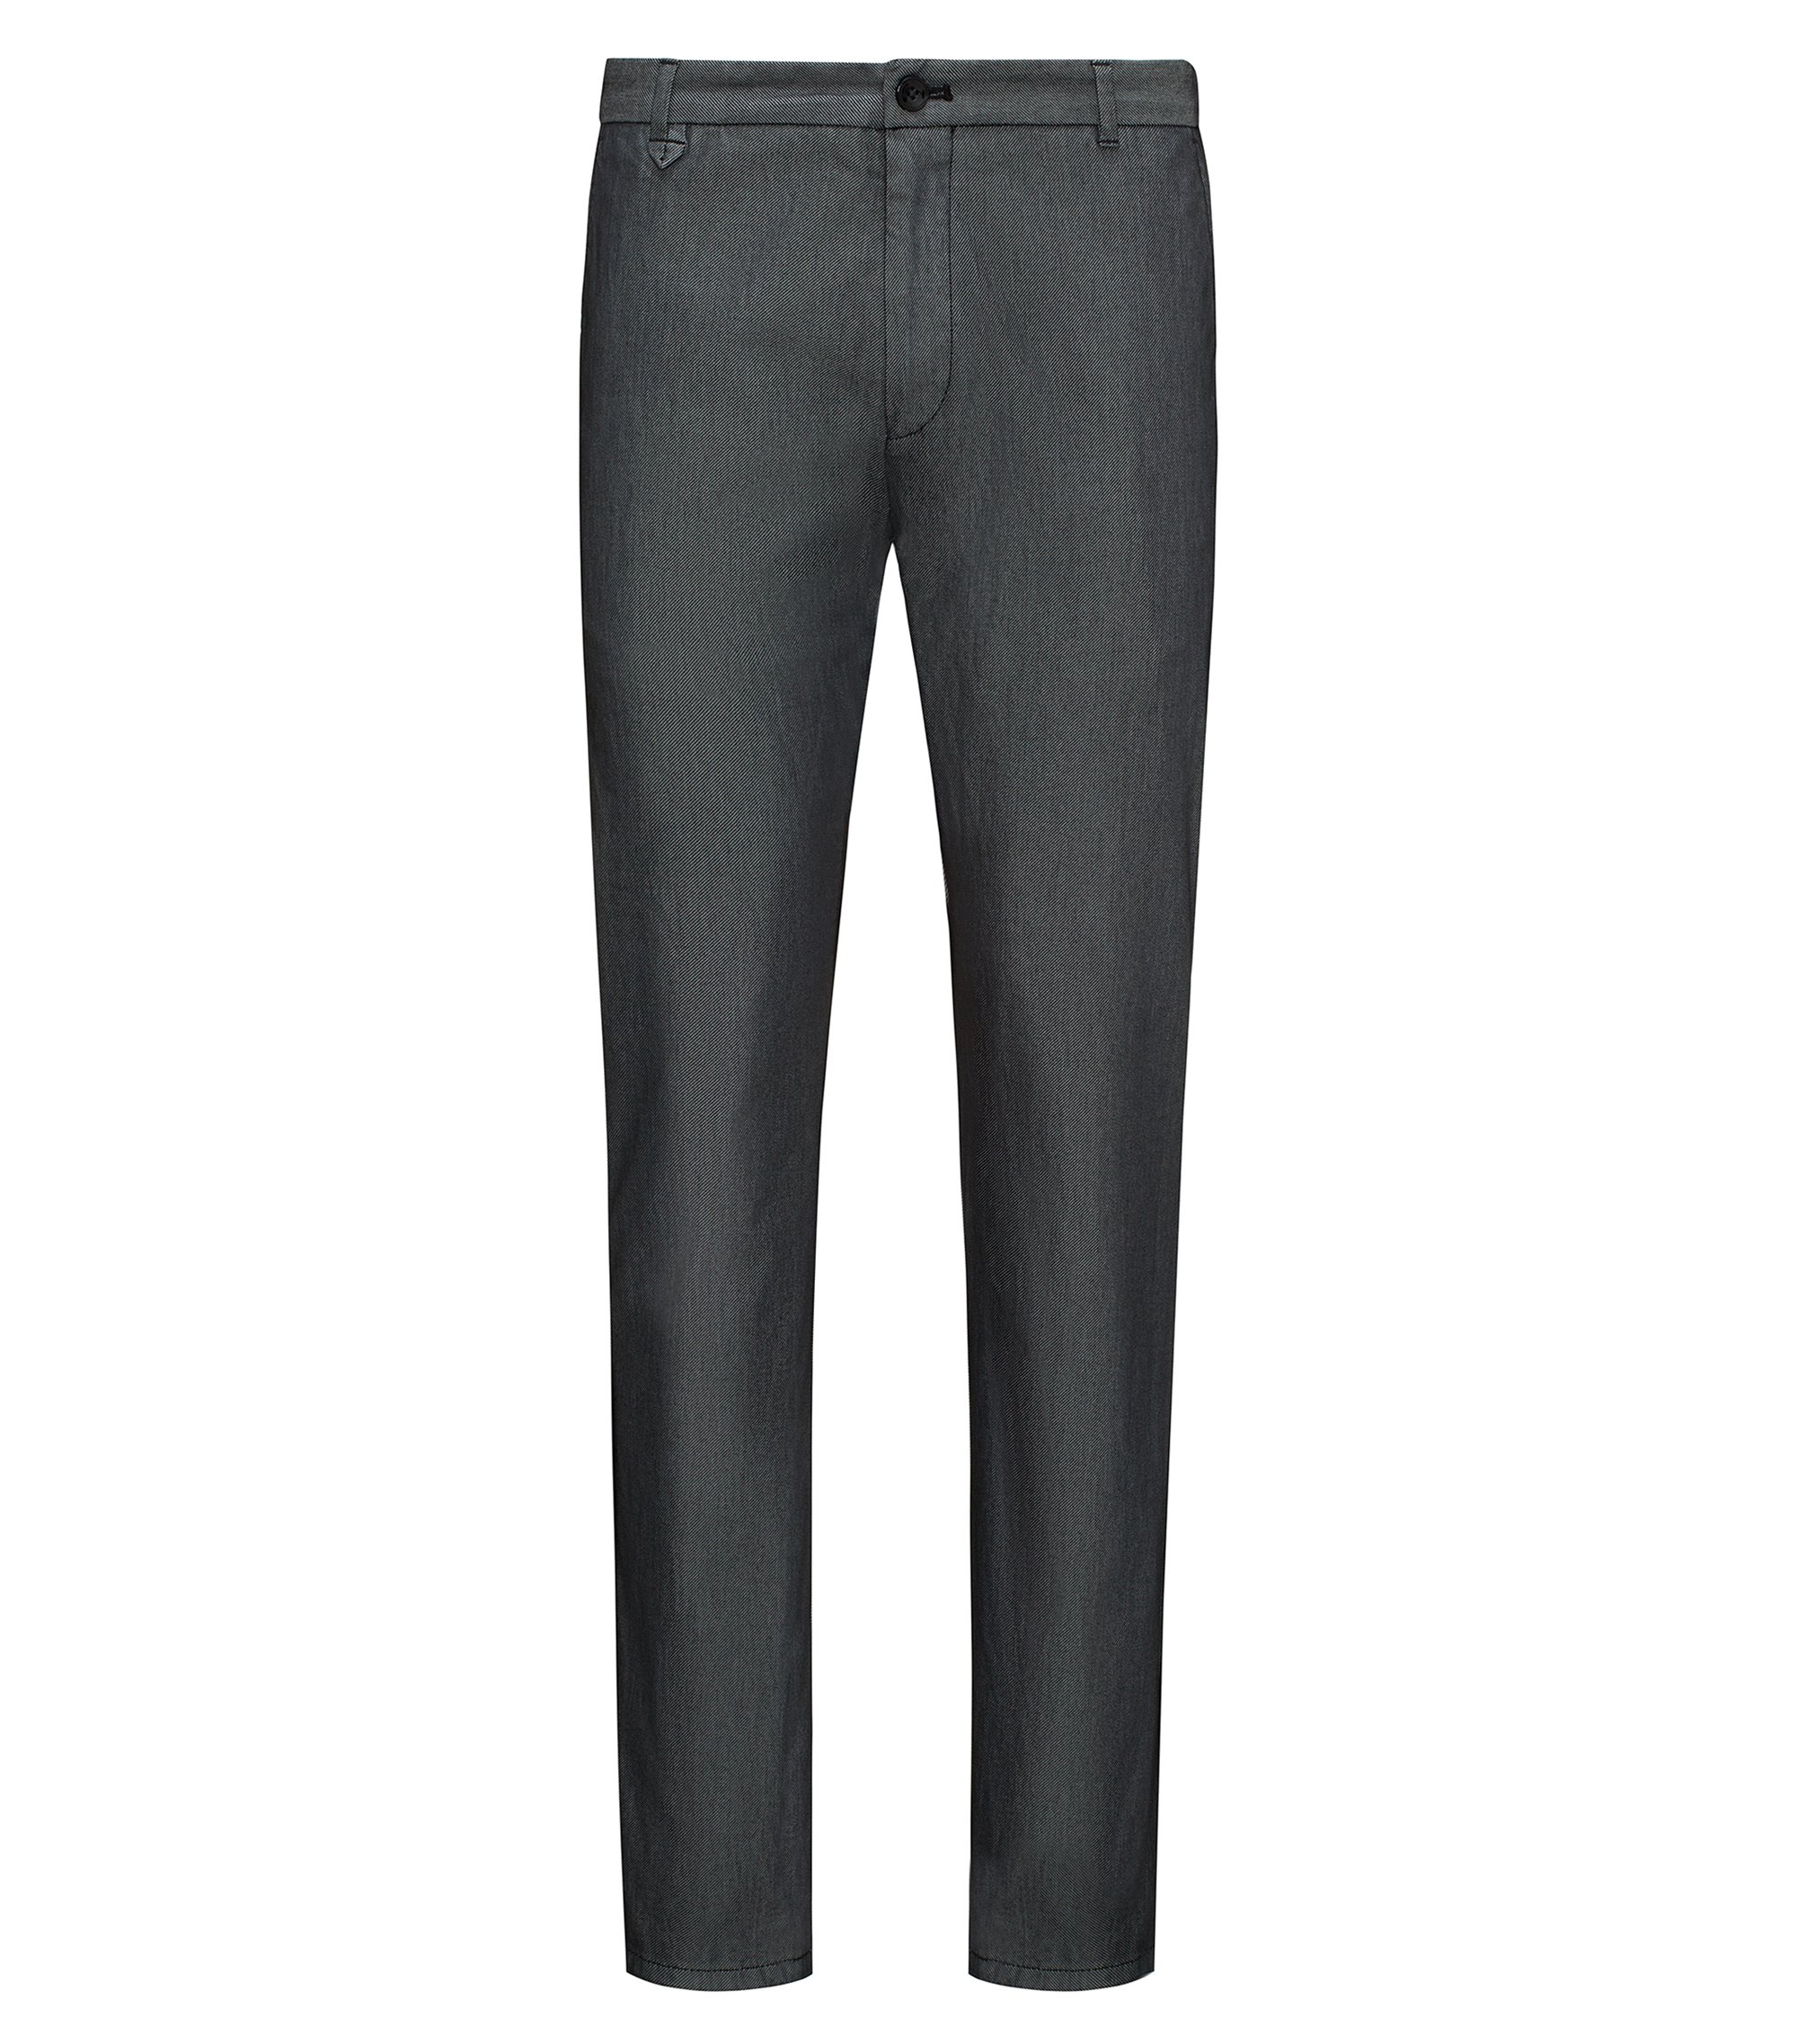 Extra-slim-fit trousers in two-tone stretch gabardine, Black